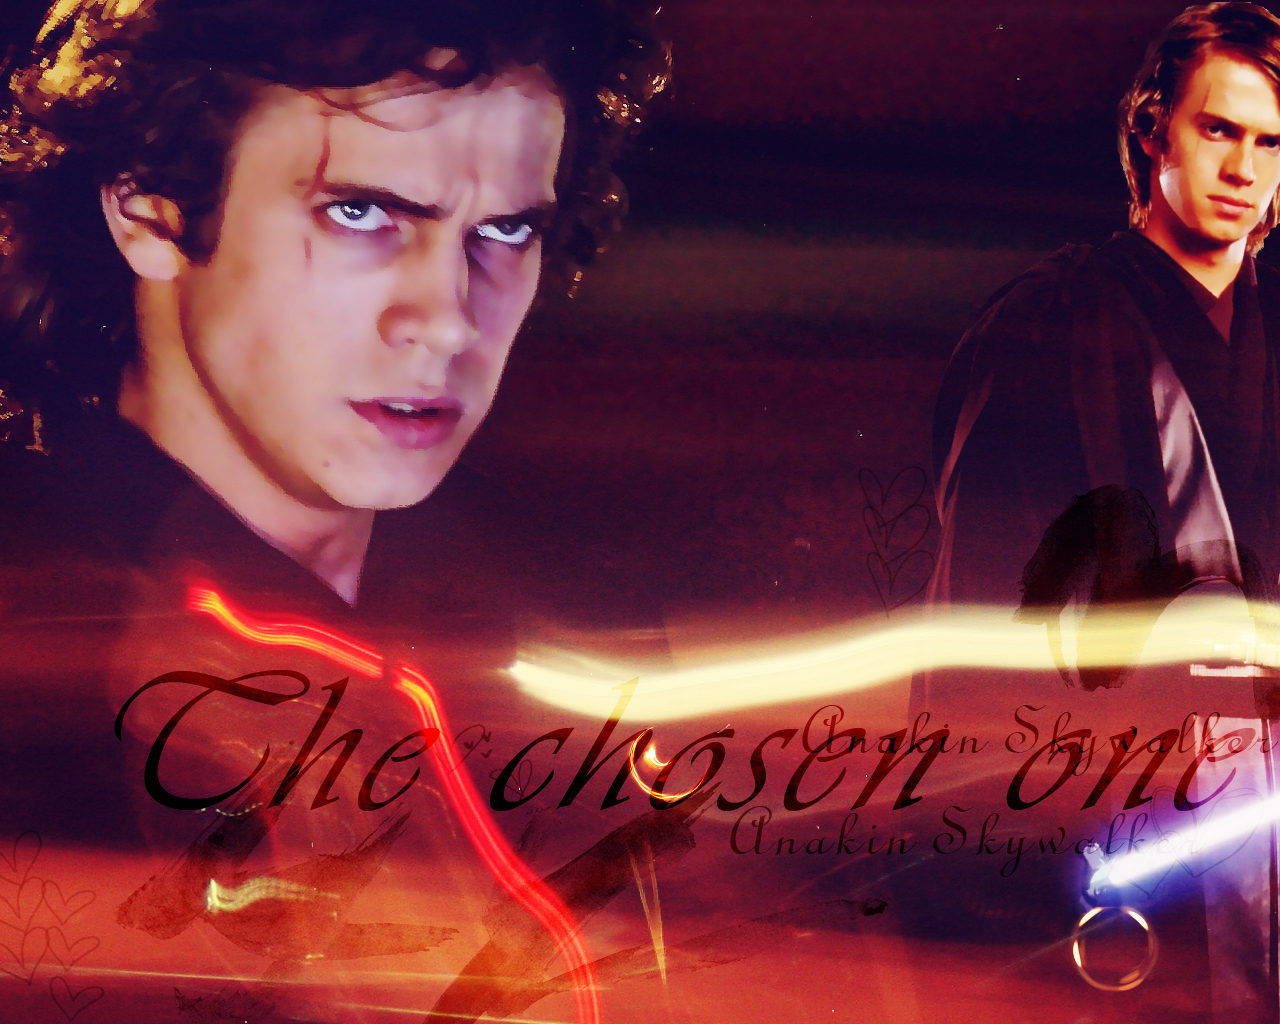 skywalker   Anakin Skywalker Wallpaper 505324 1280x1024